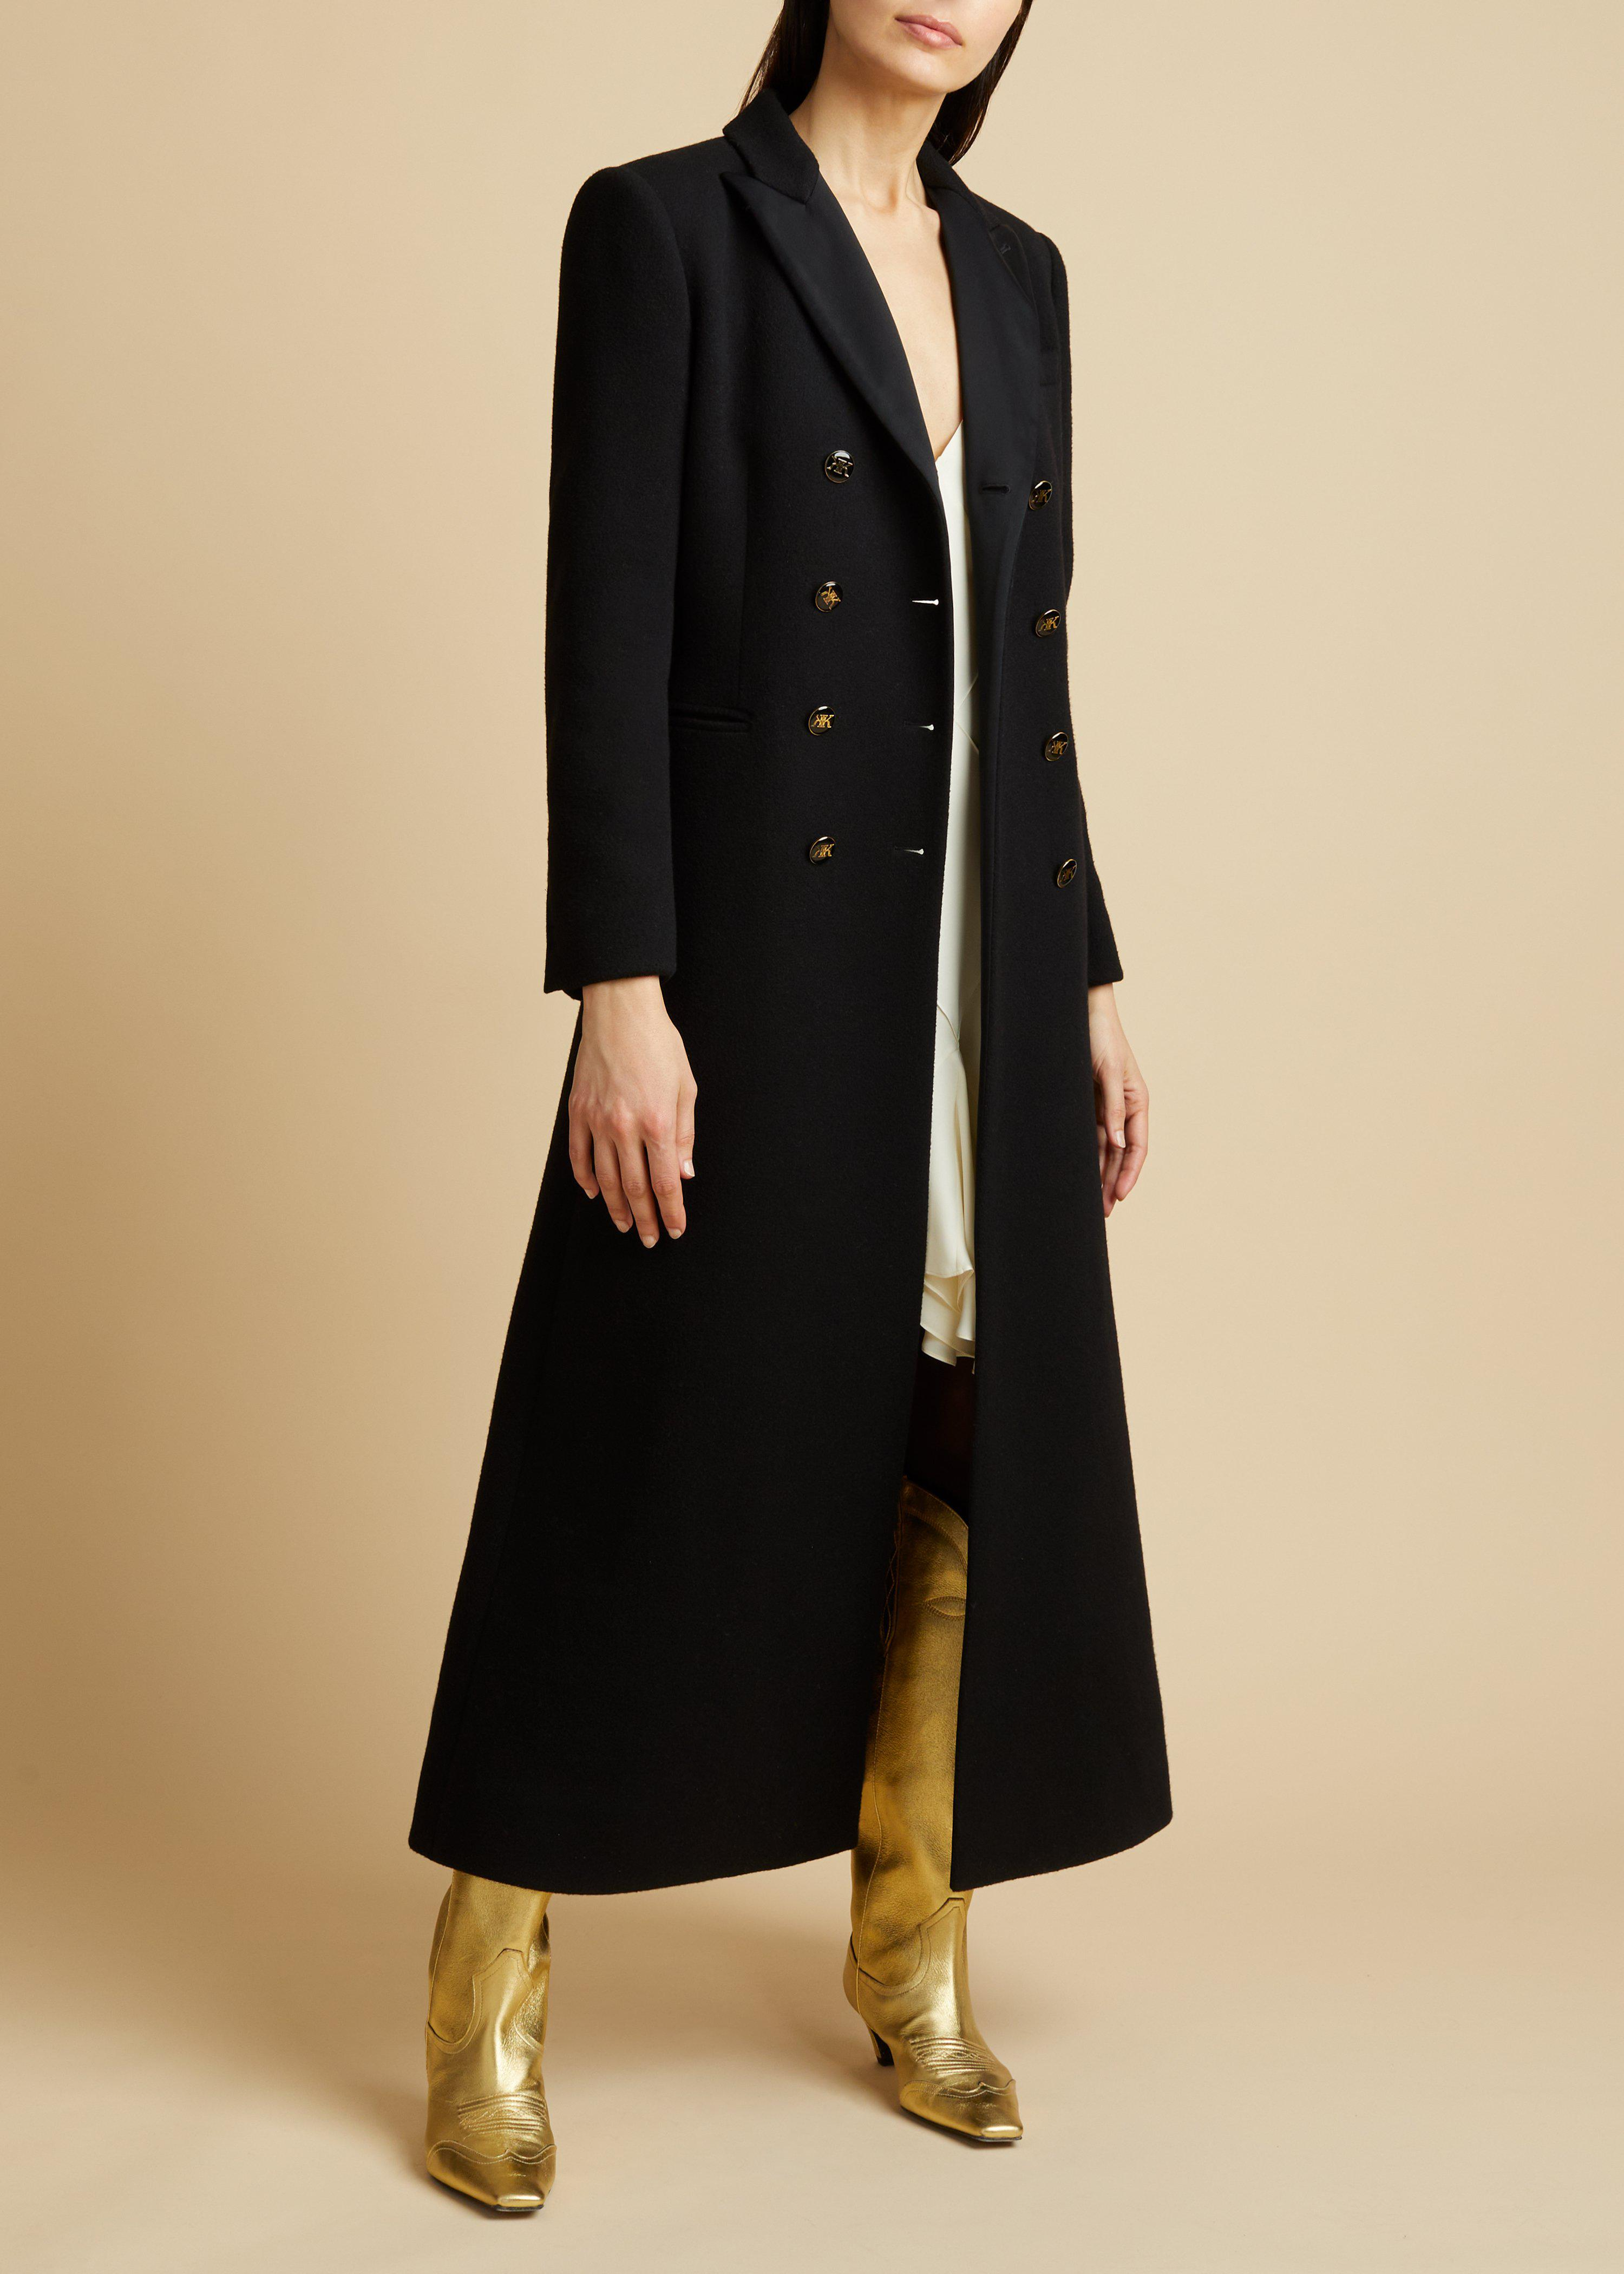 The Marge Coat in Black